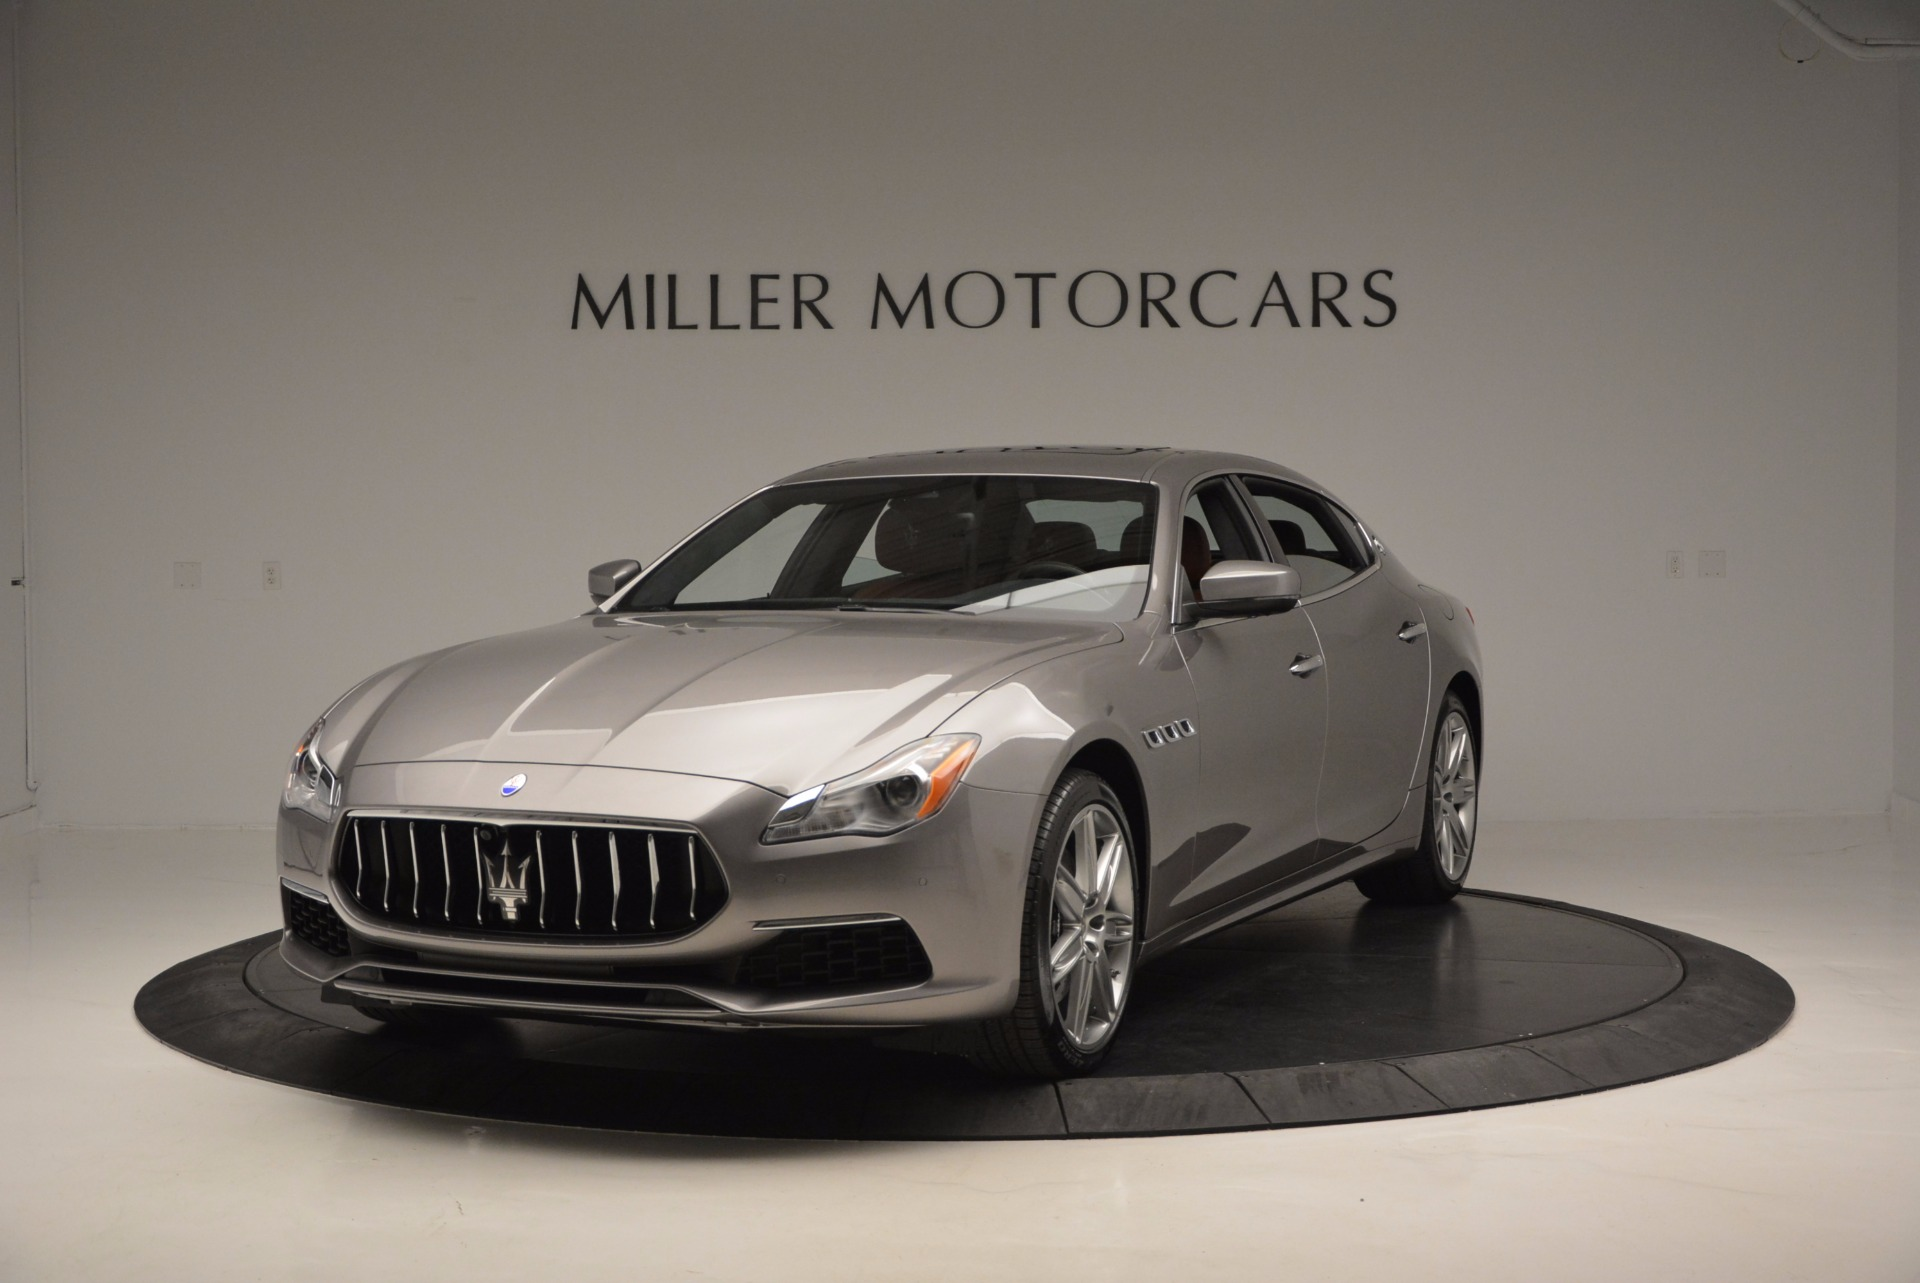 New 2017 Maserati Quattroporte S Q4 GranLusso For Sale In Greenwich, CT 1354_main